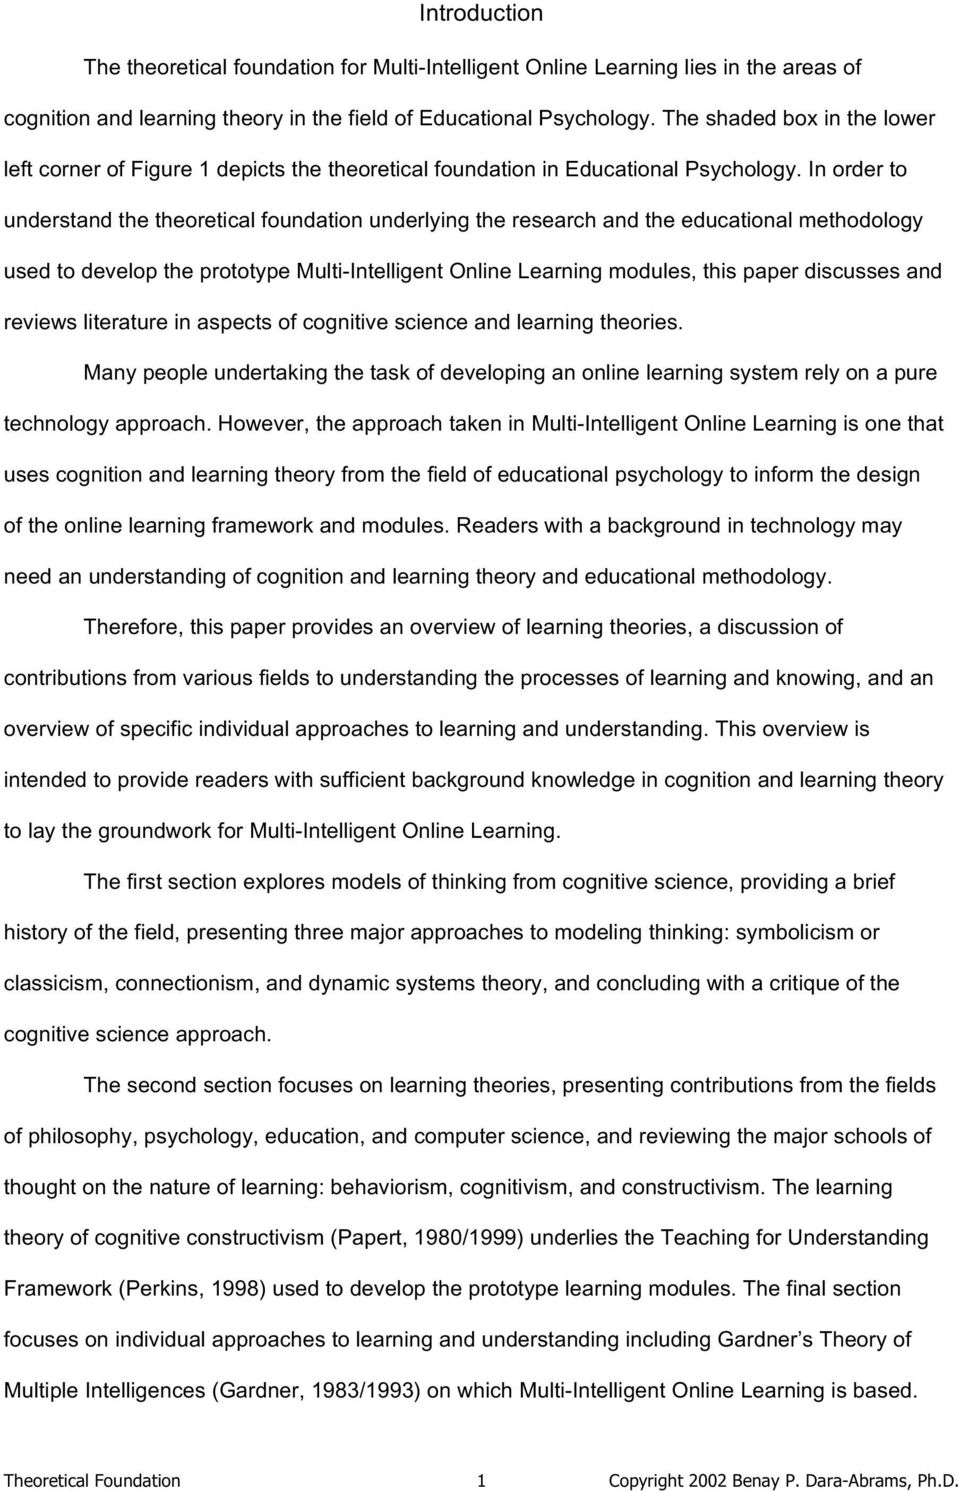 In order to understand the theoretical foundation underlying the research and the educational methodology used to develop the prototype Multi-Intelligent Online Learning modules, this paper discusses